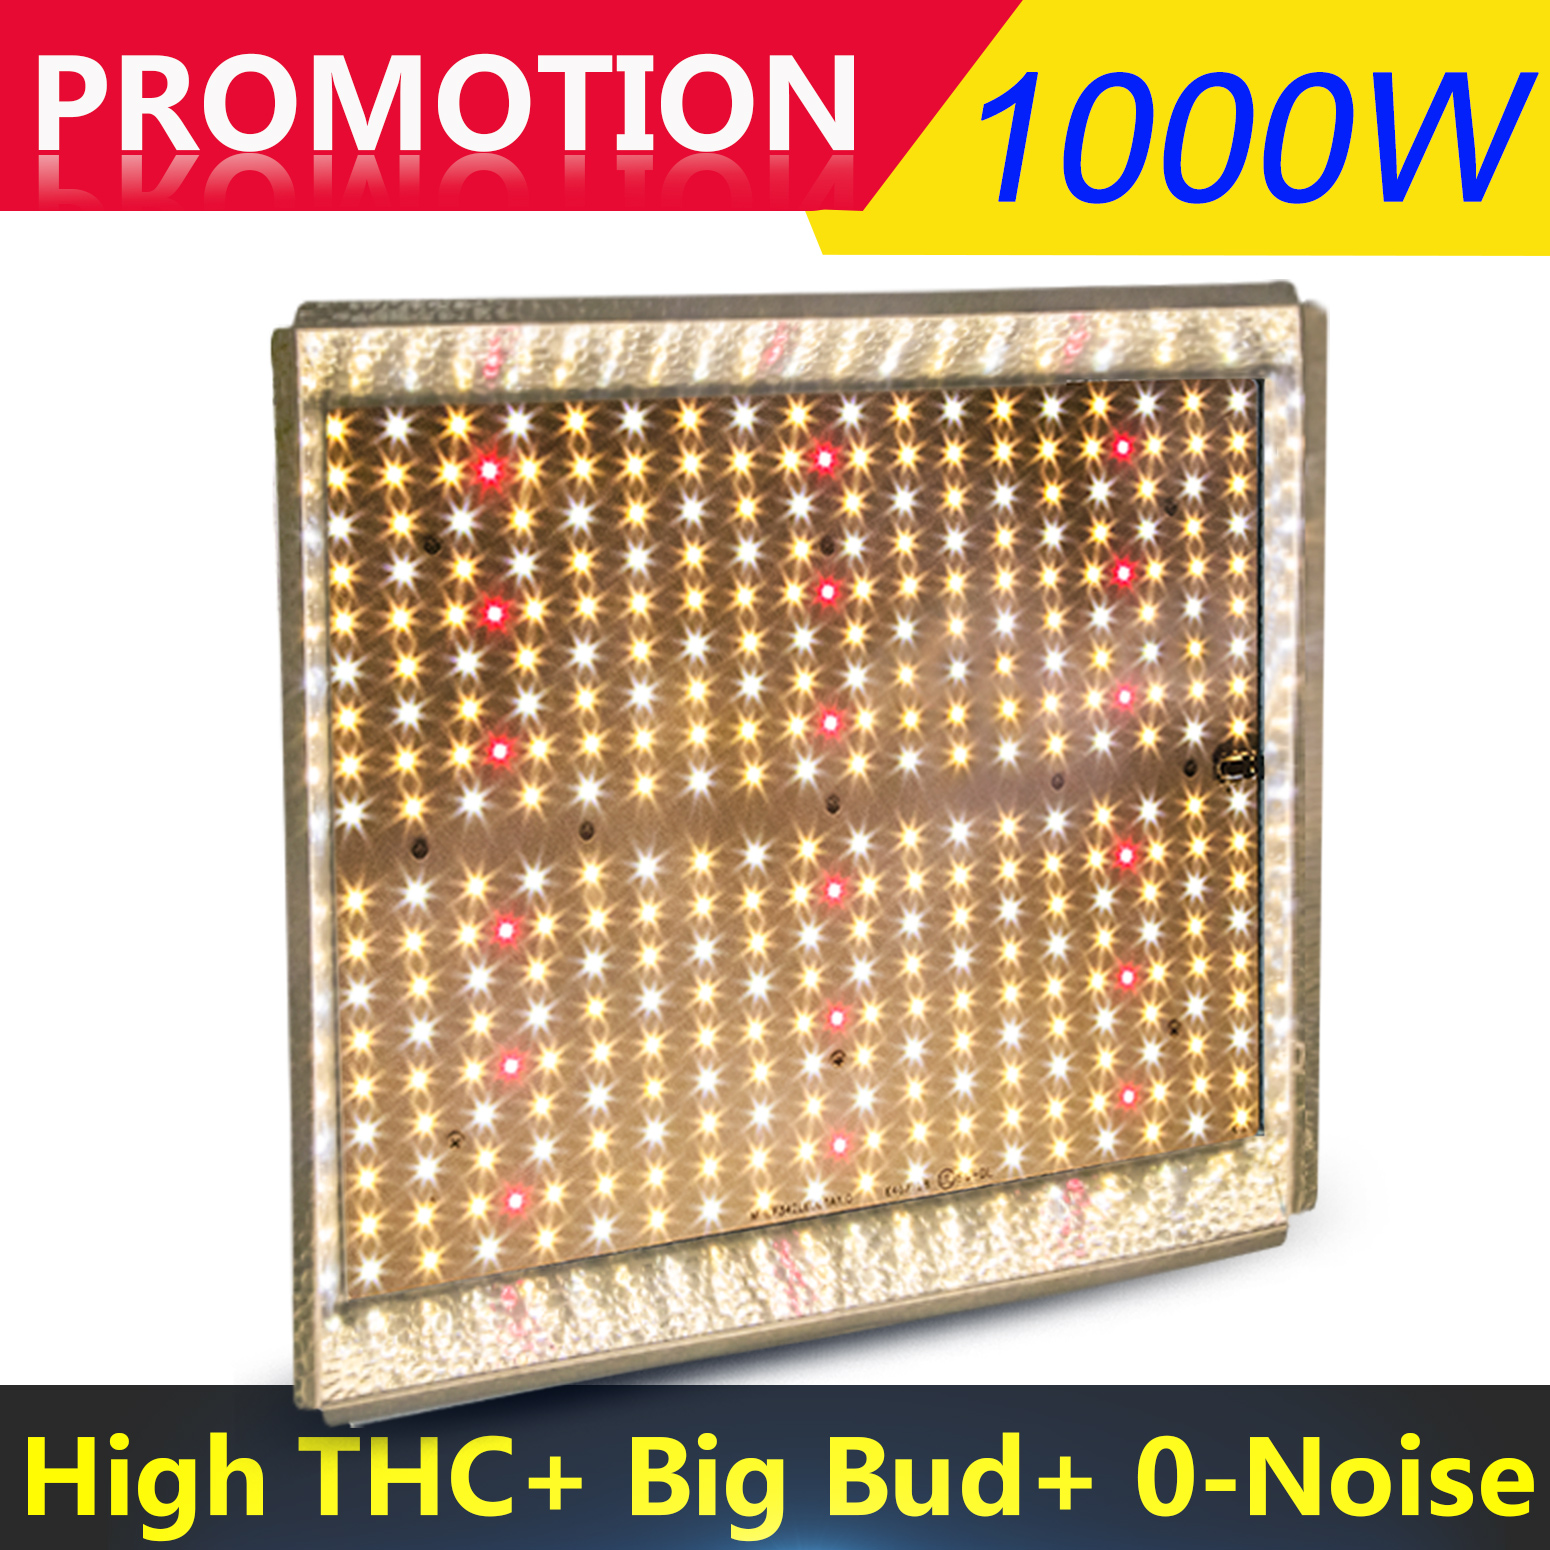 Mars Hydro Ts 1000w Led Grow Lights Full Spectrum Veg Bloom Indoor Plants Lamp Ebay